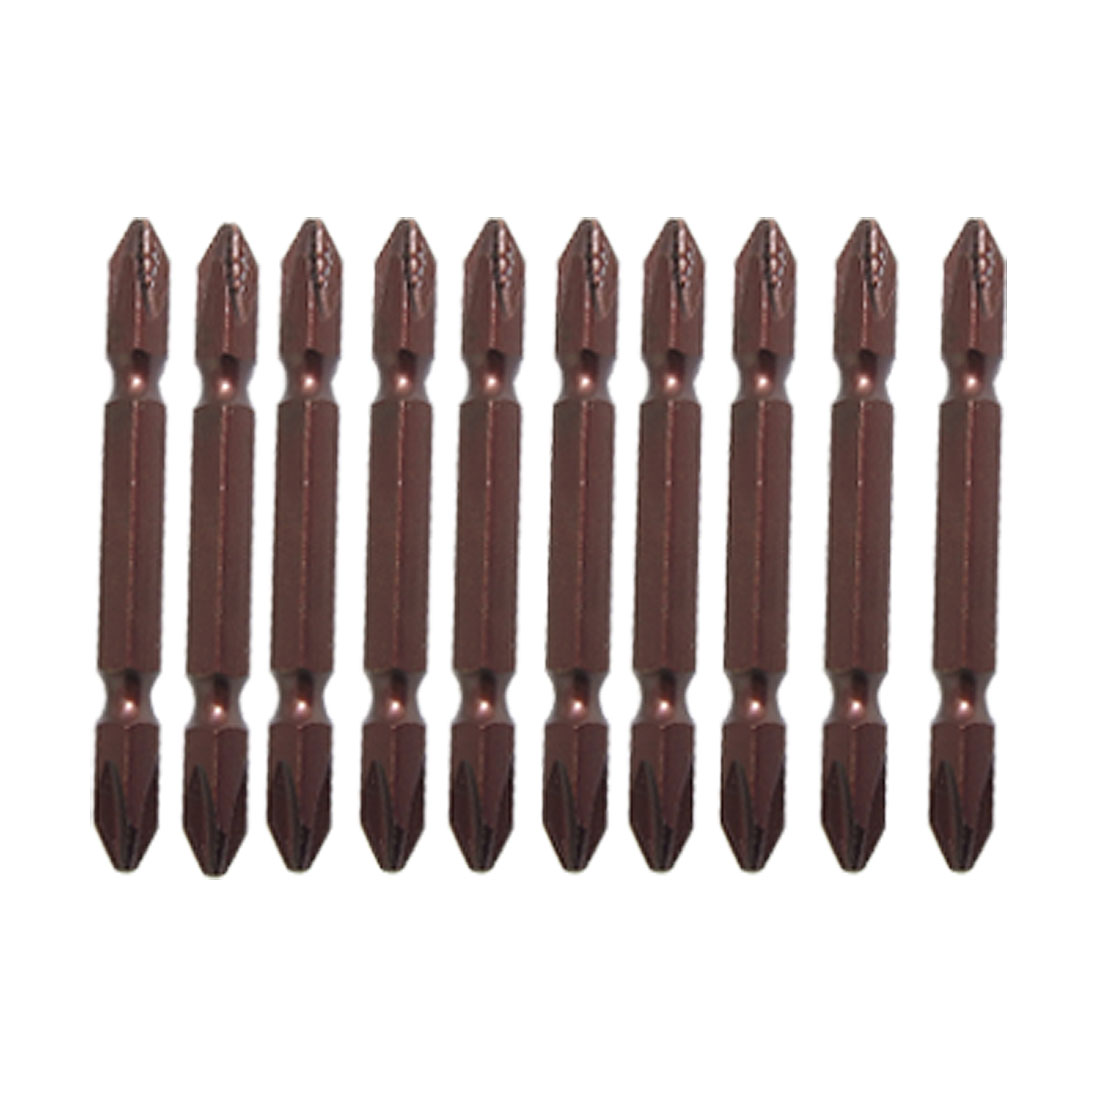 10 Pcs Double End Magnetic PH1 Phillips Screwdriver Bit